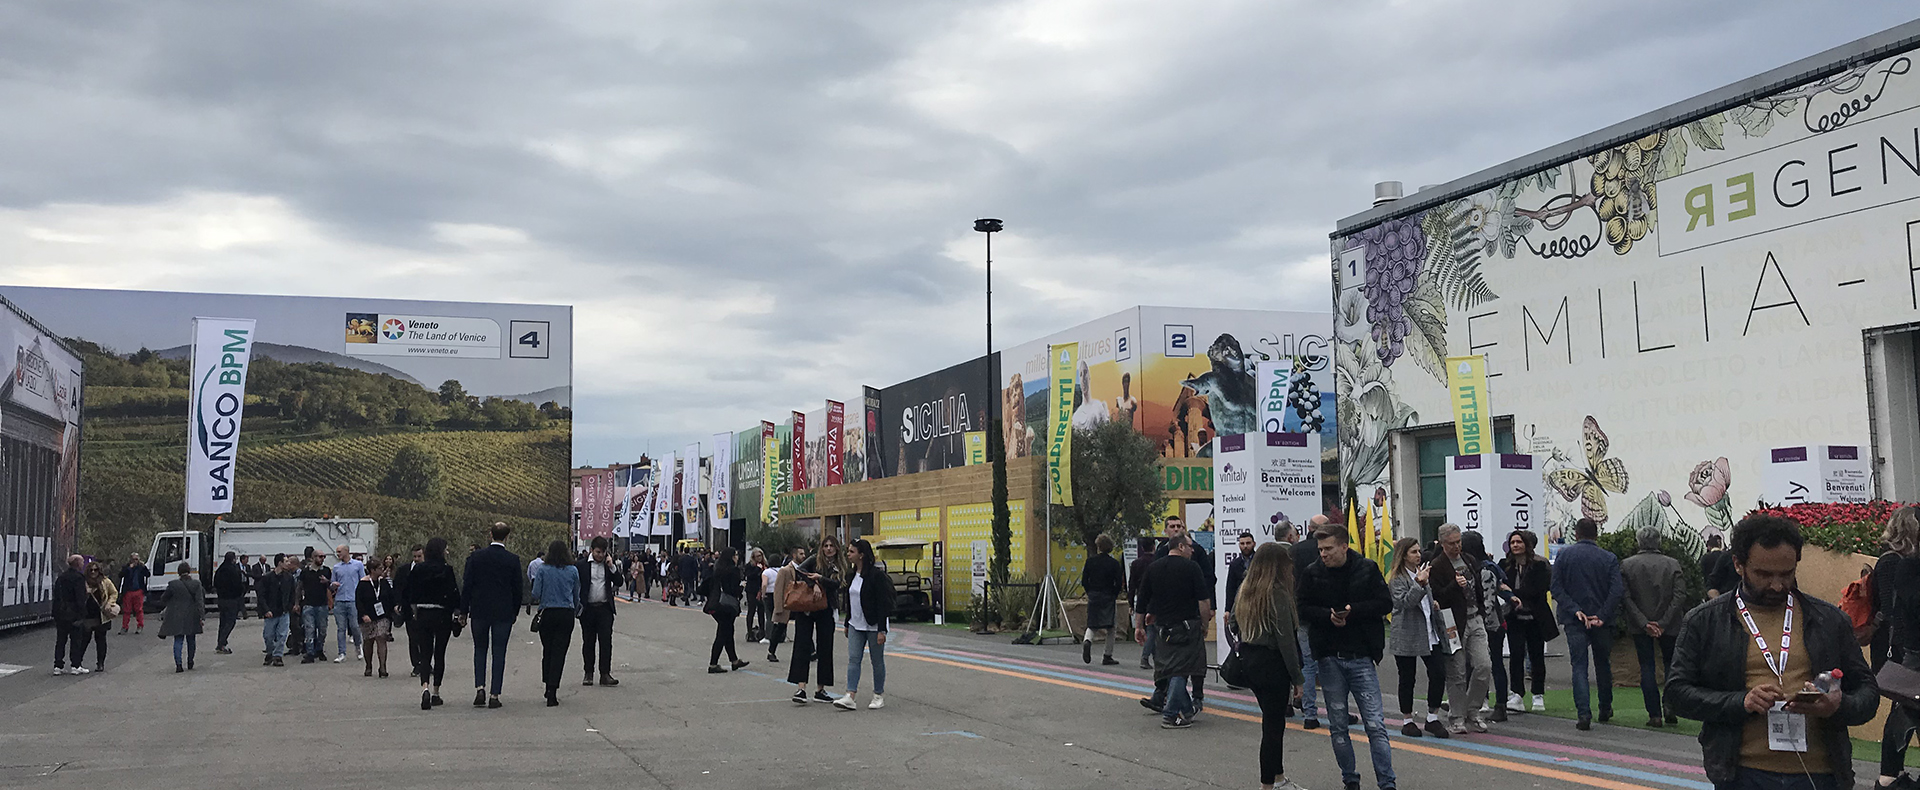 Thanks for a great Vinitaly!